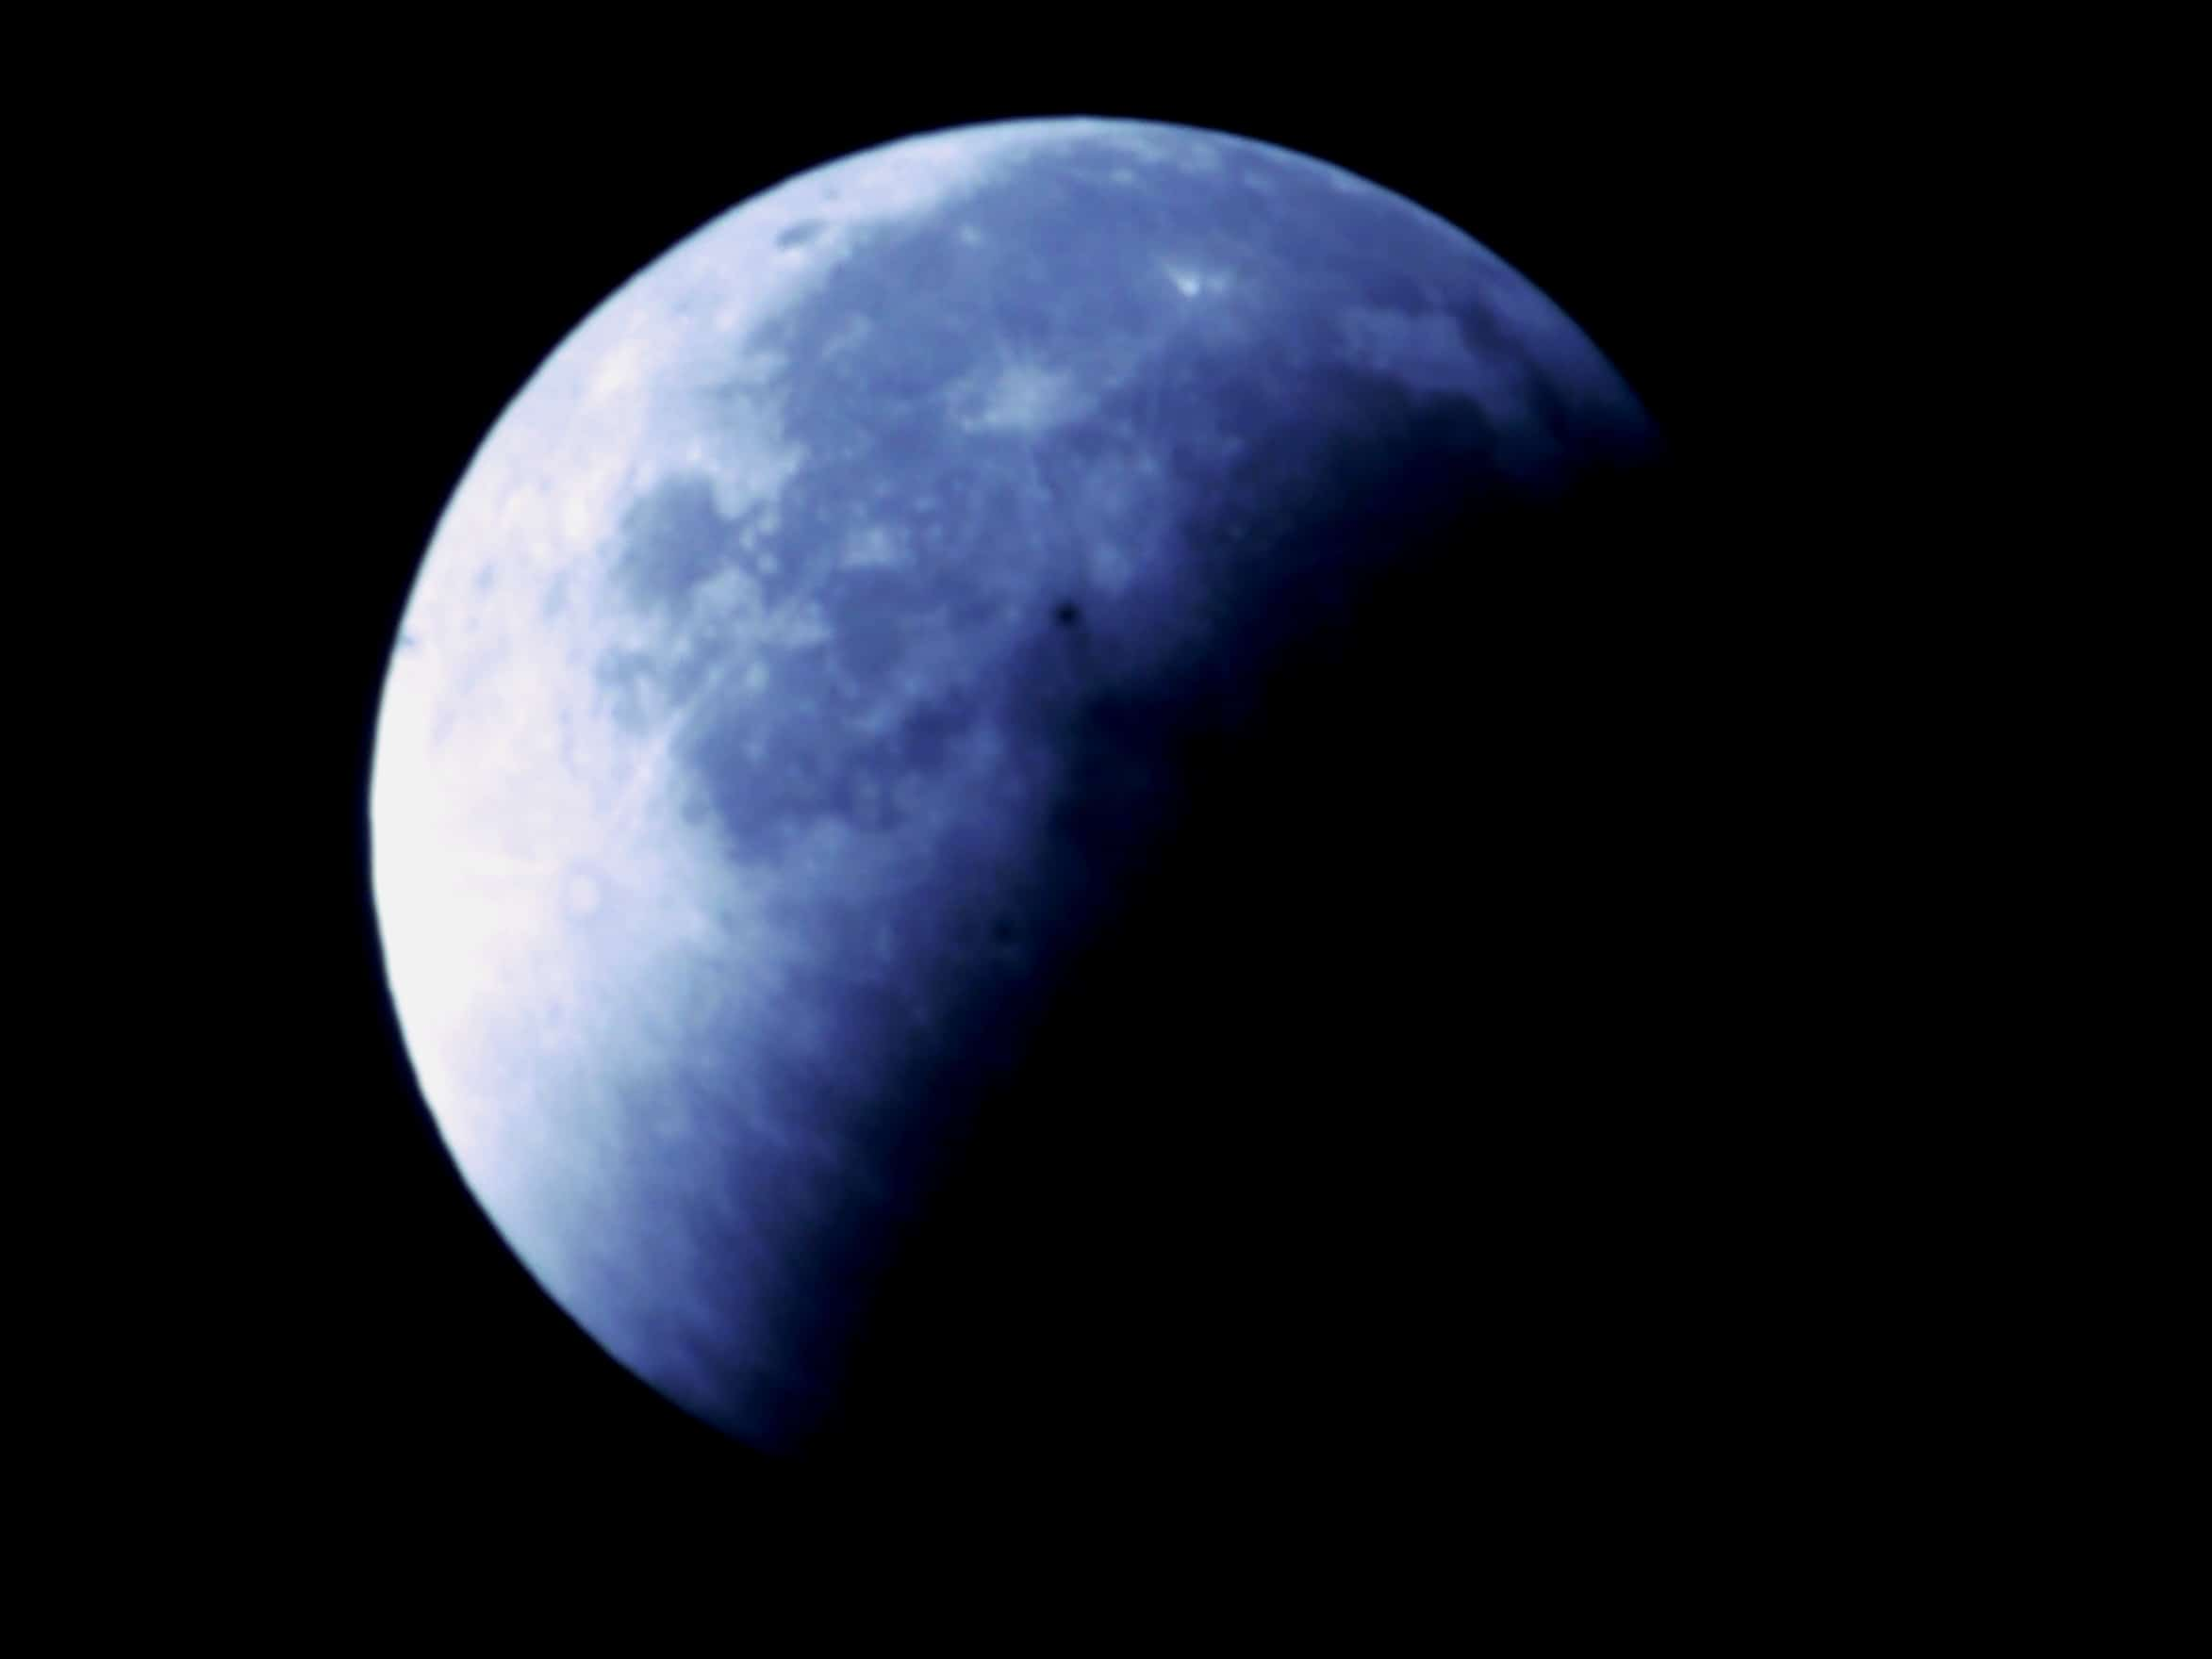 Eclipse luna 28-9-15 019A